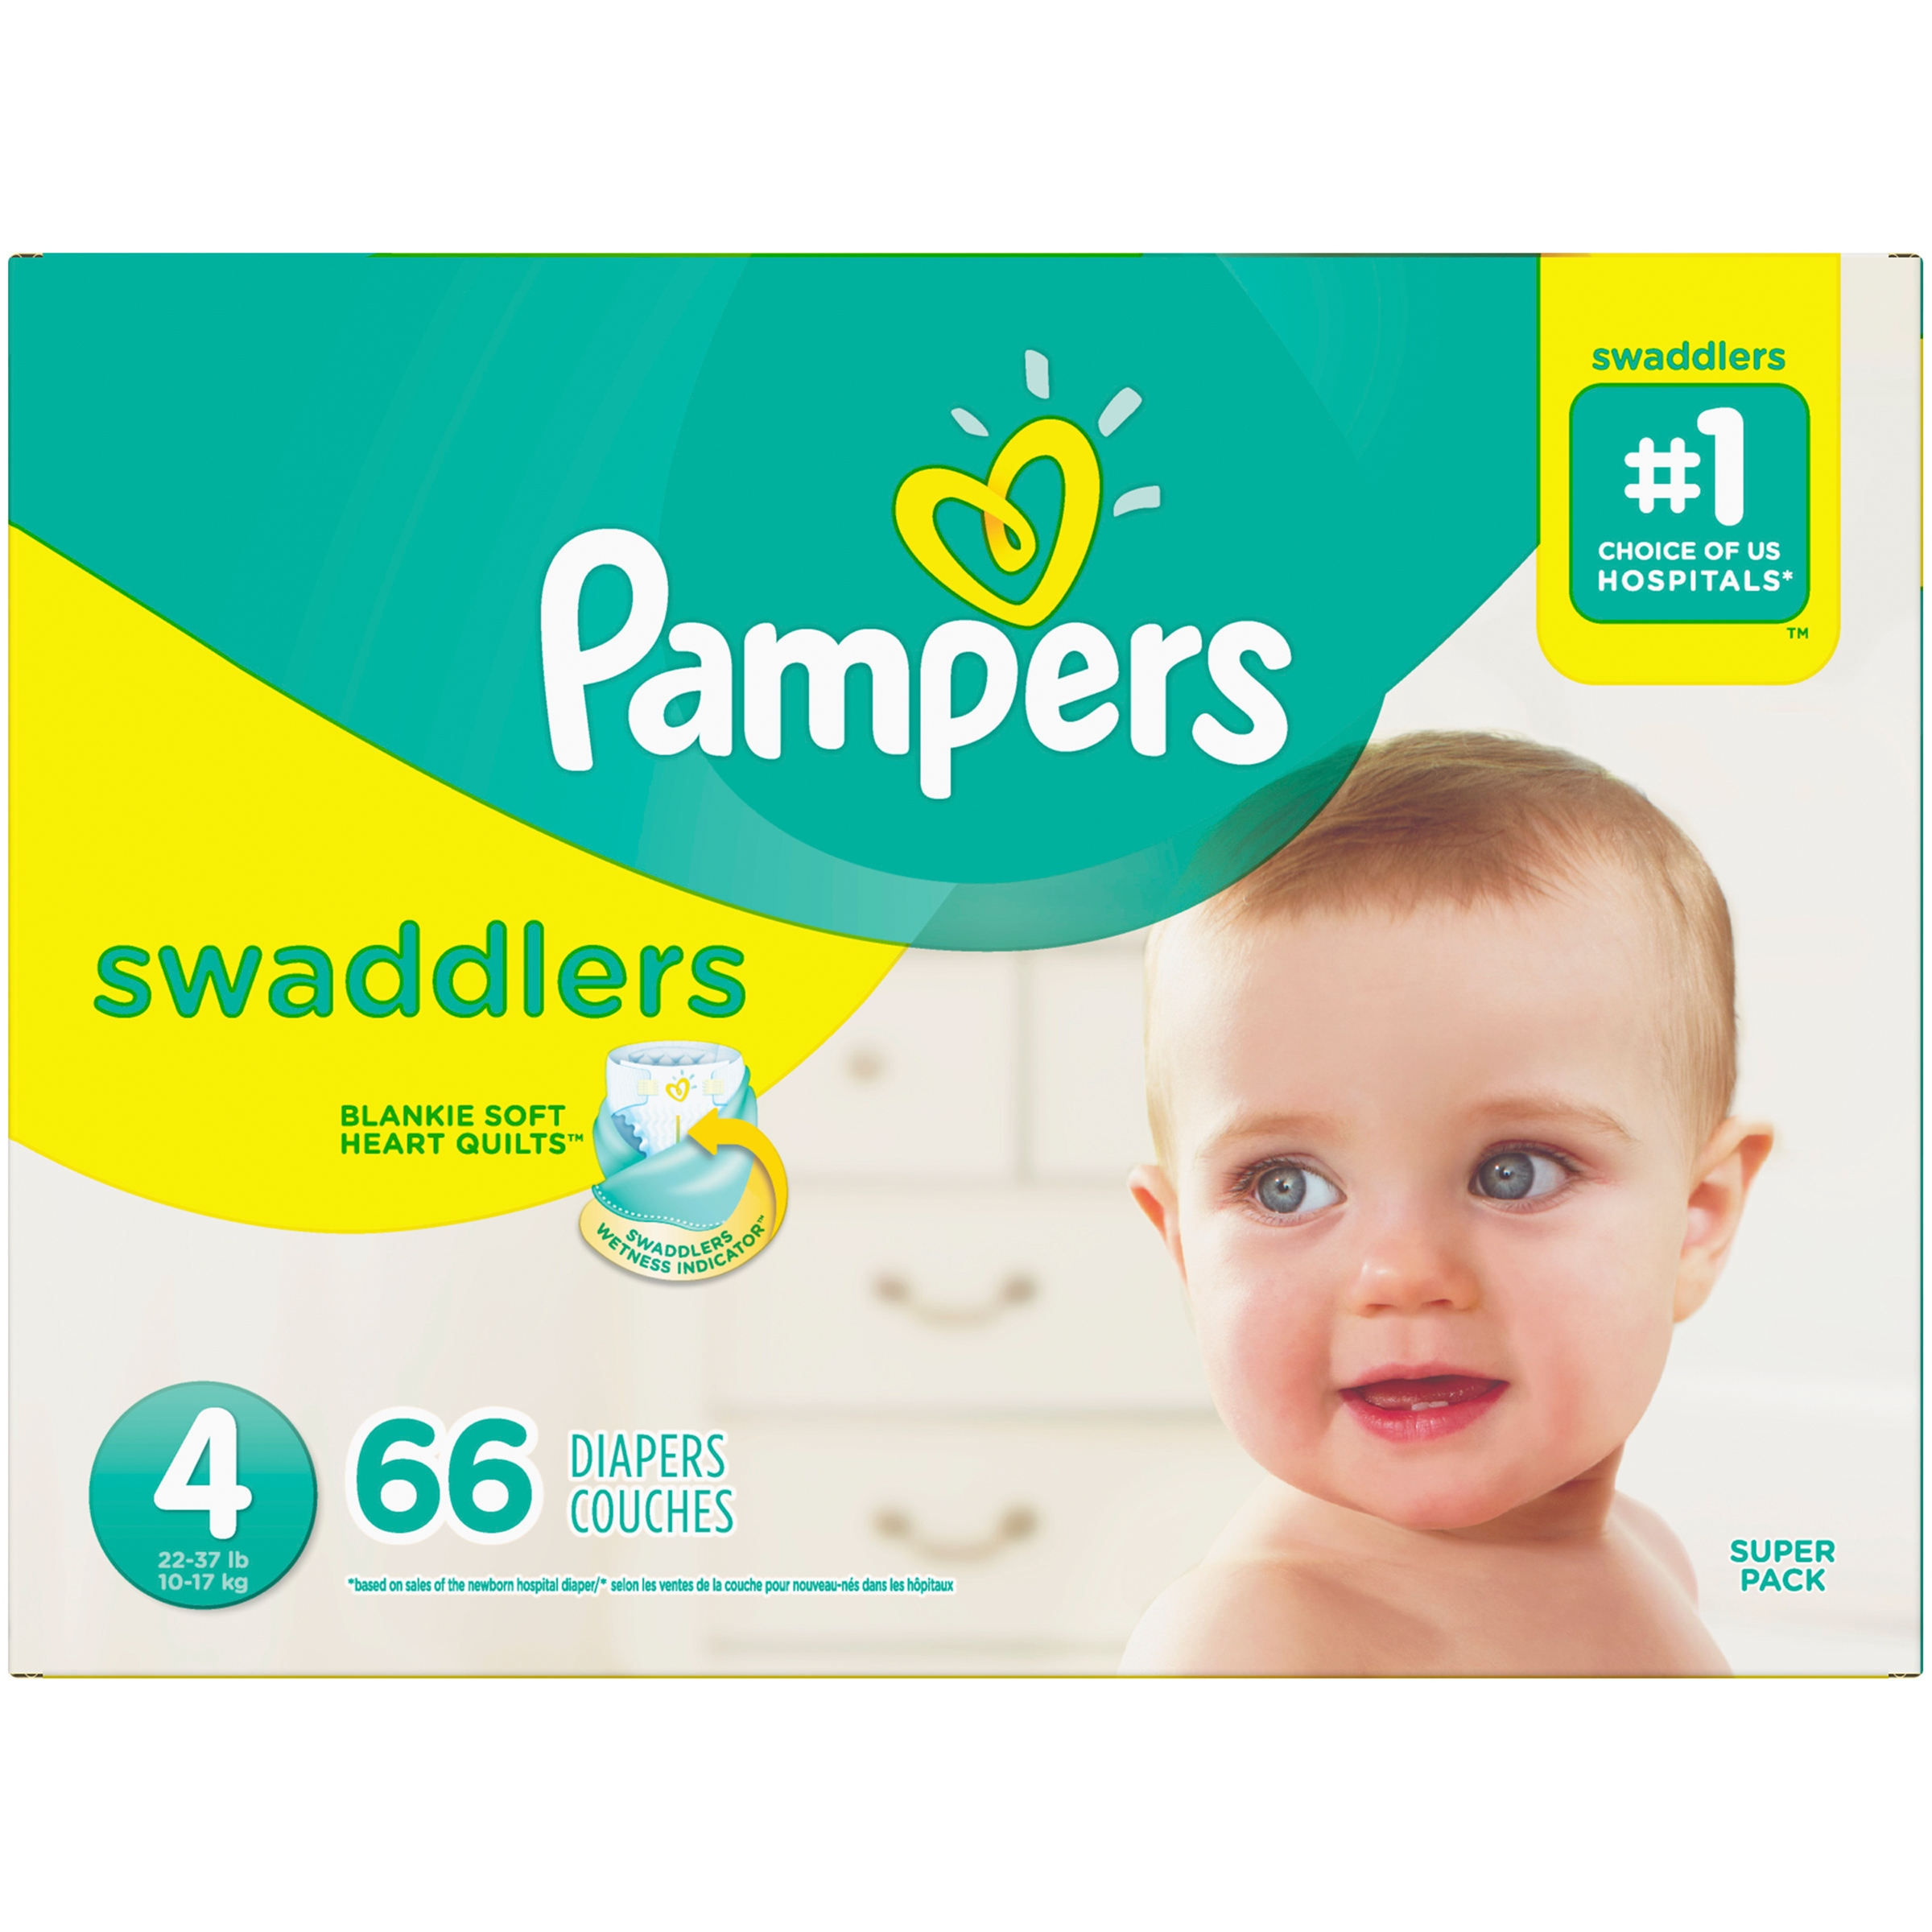 Pampers® Swaddlers Diapers Size 4 66 Count